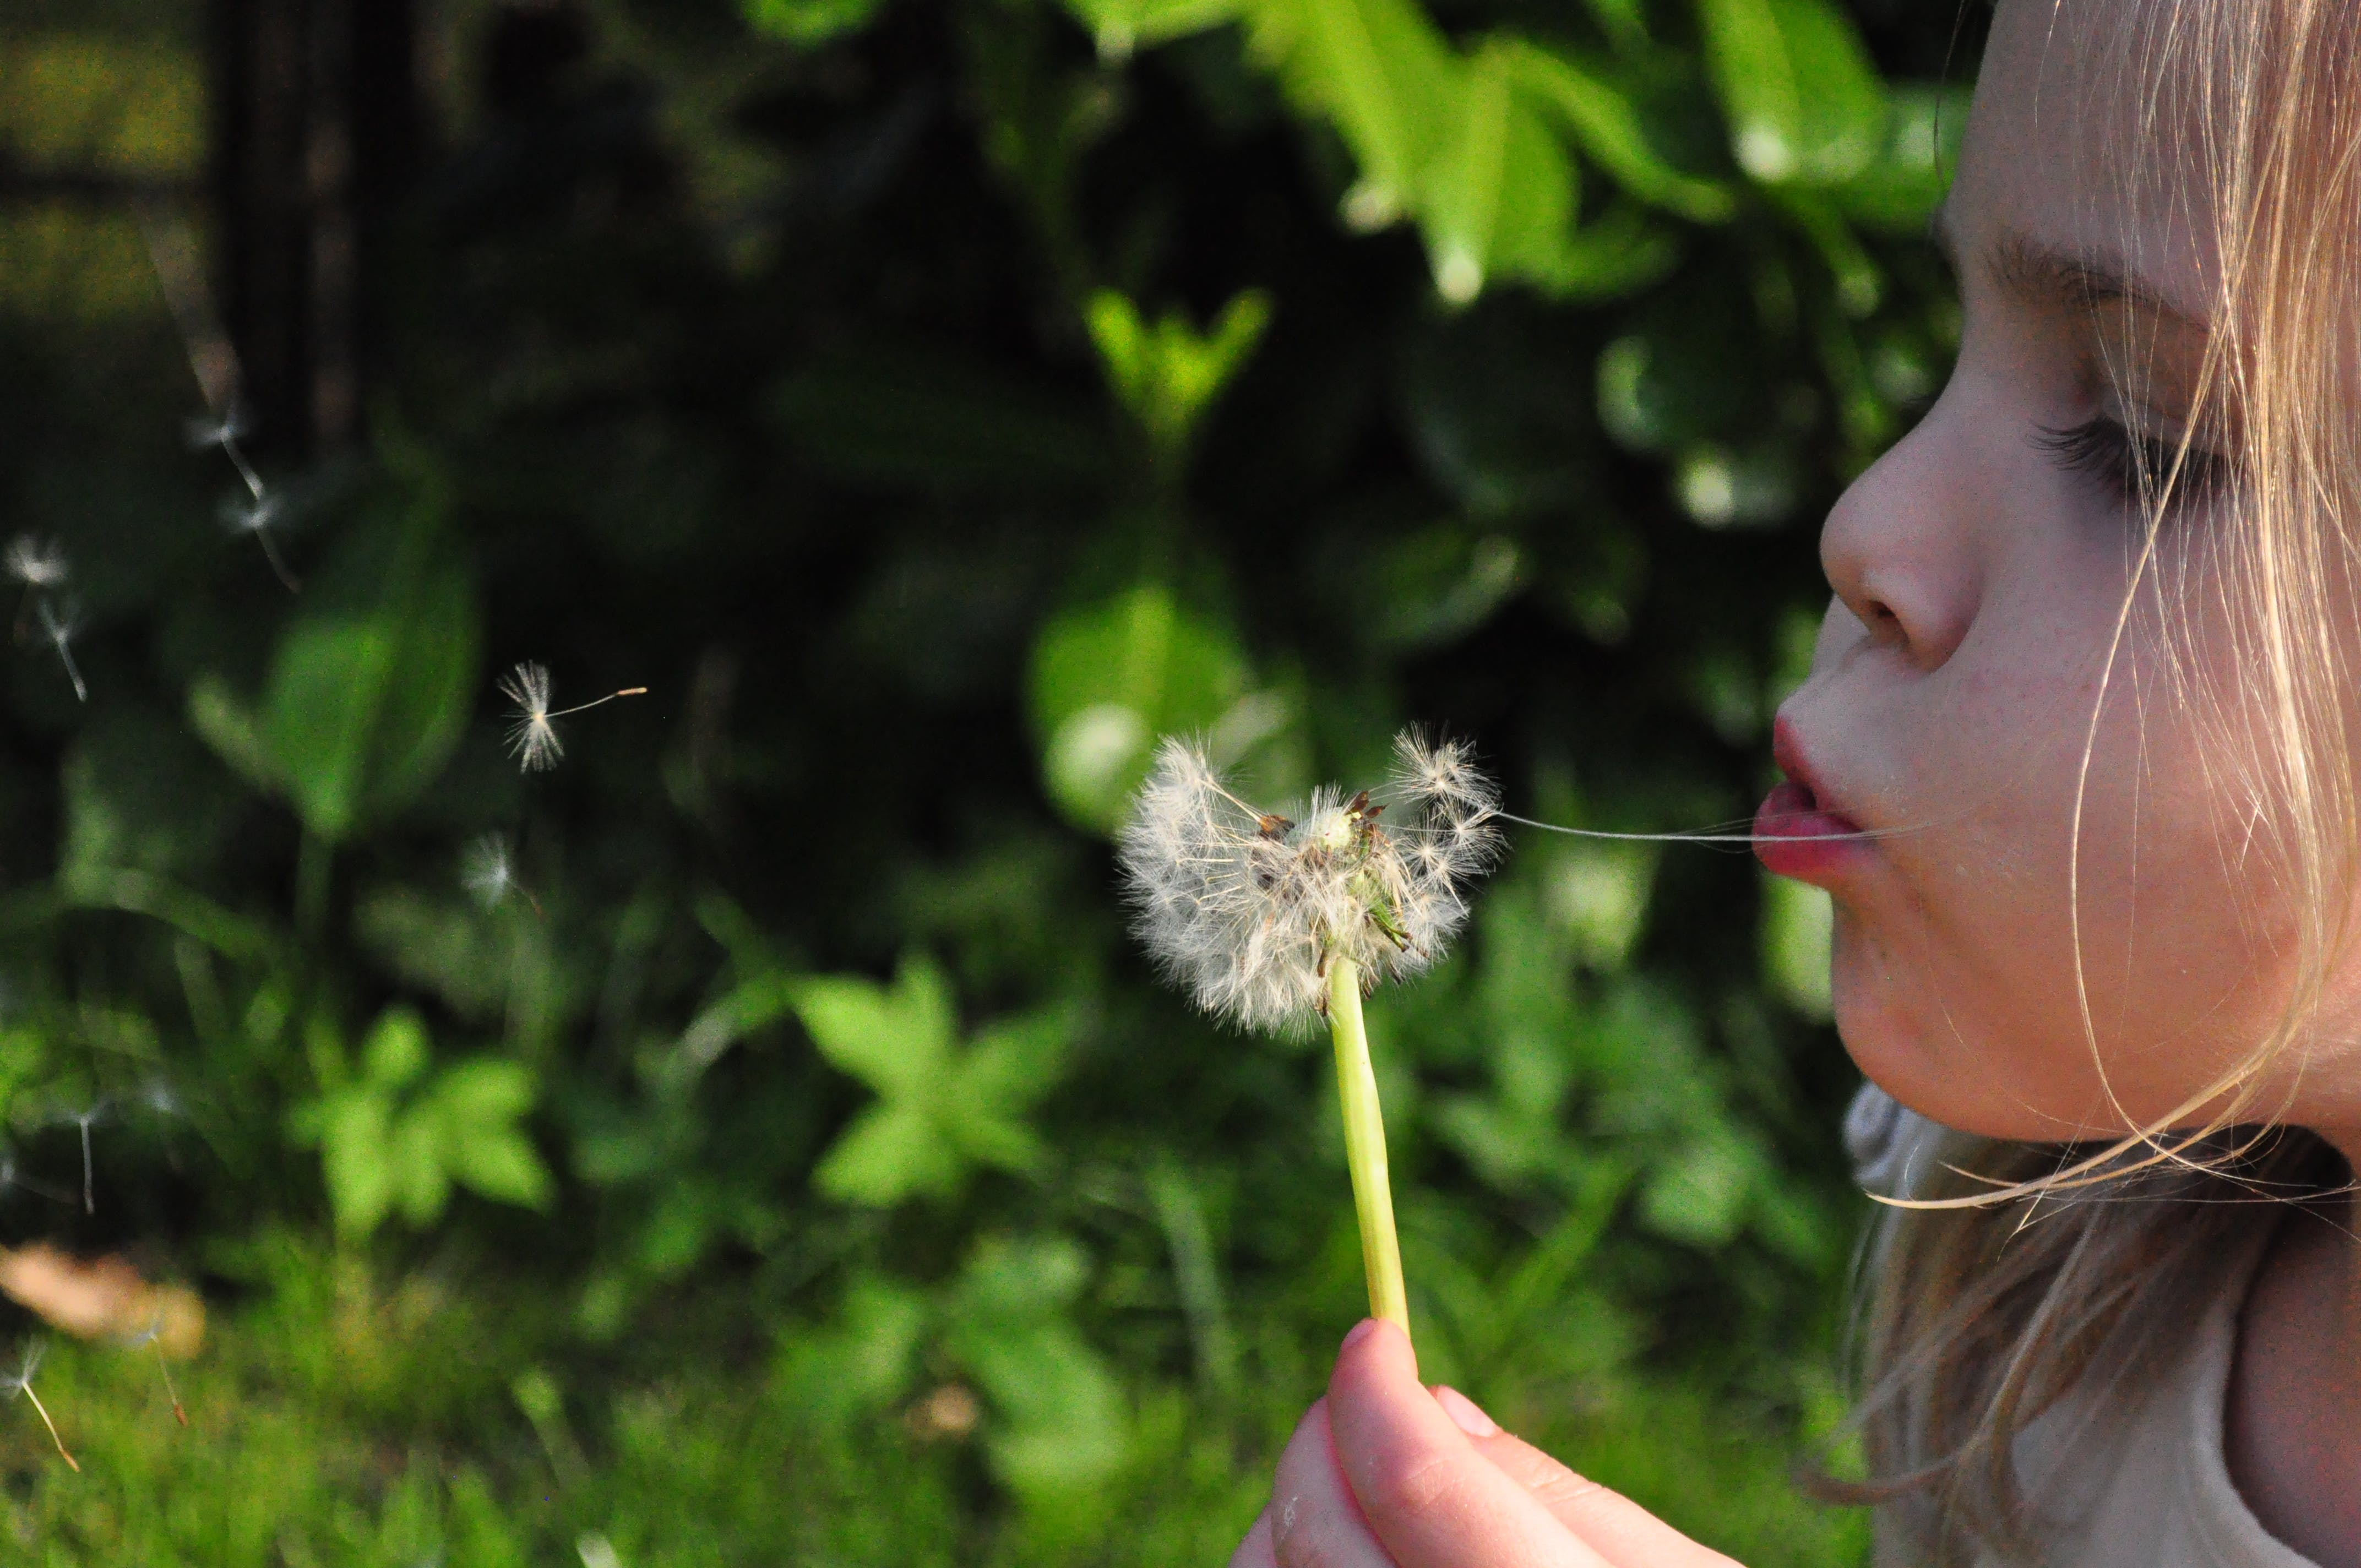 Girl Blowing White Dandelion Flower